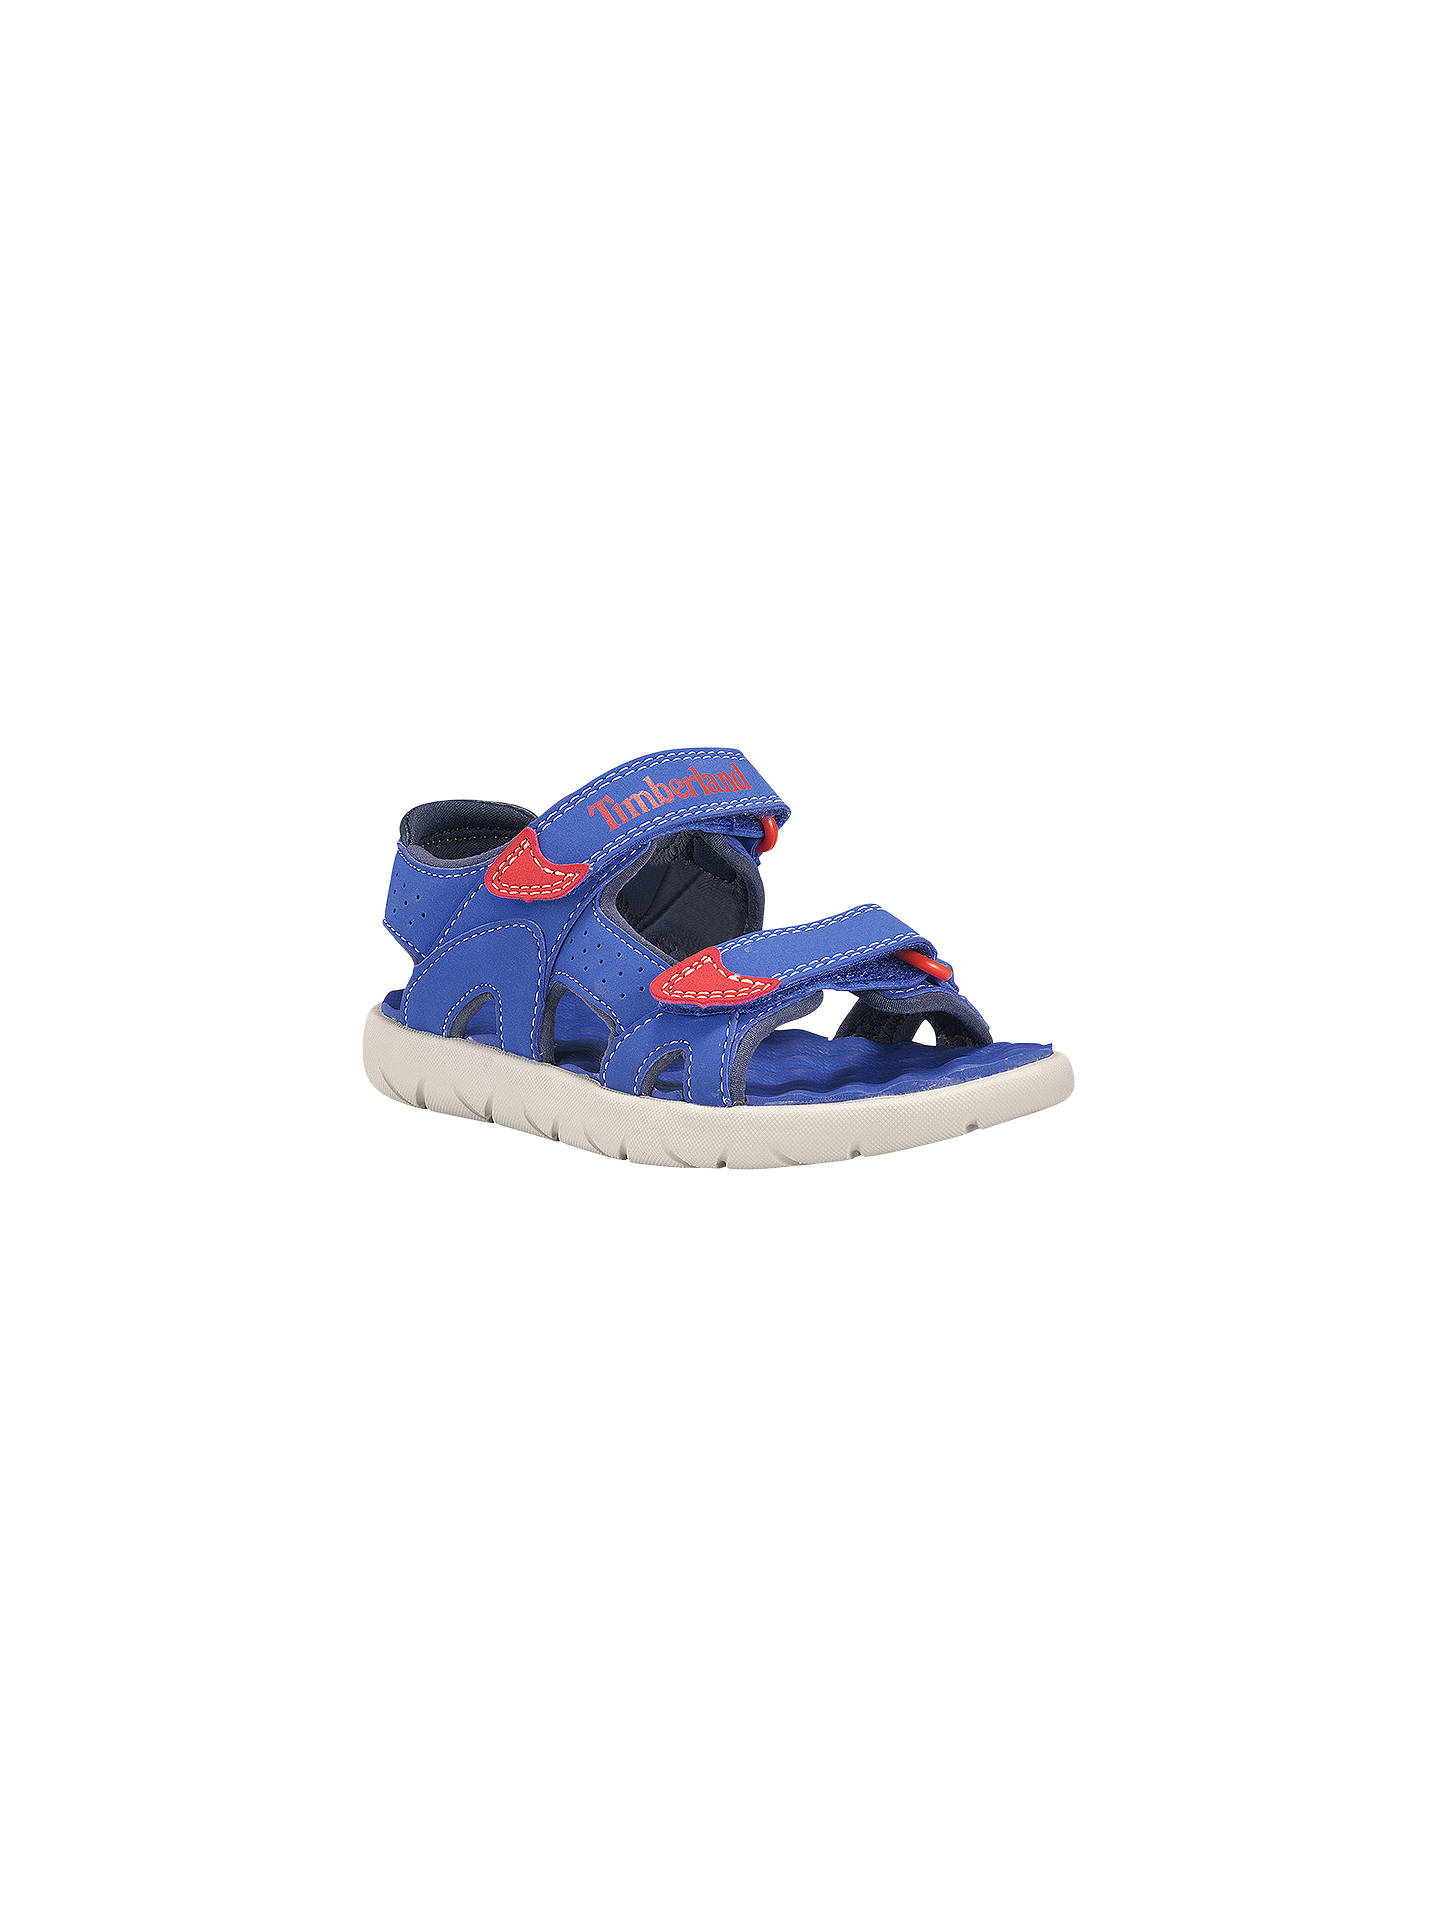 Boys' Shoes Smart Toddler Timberland Sandals